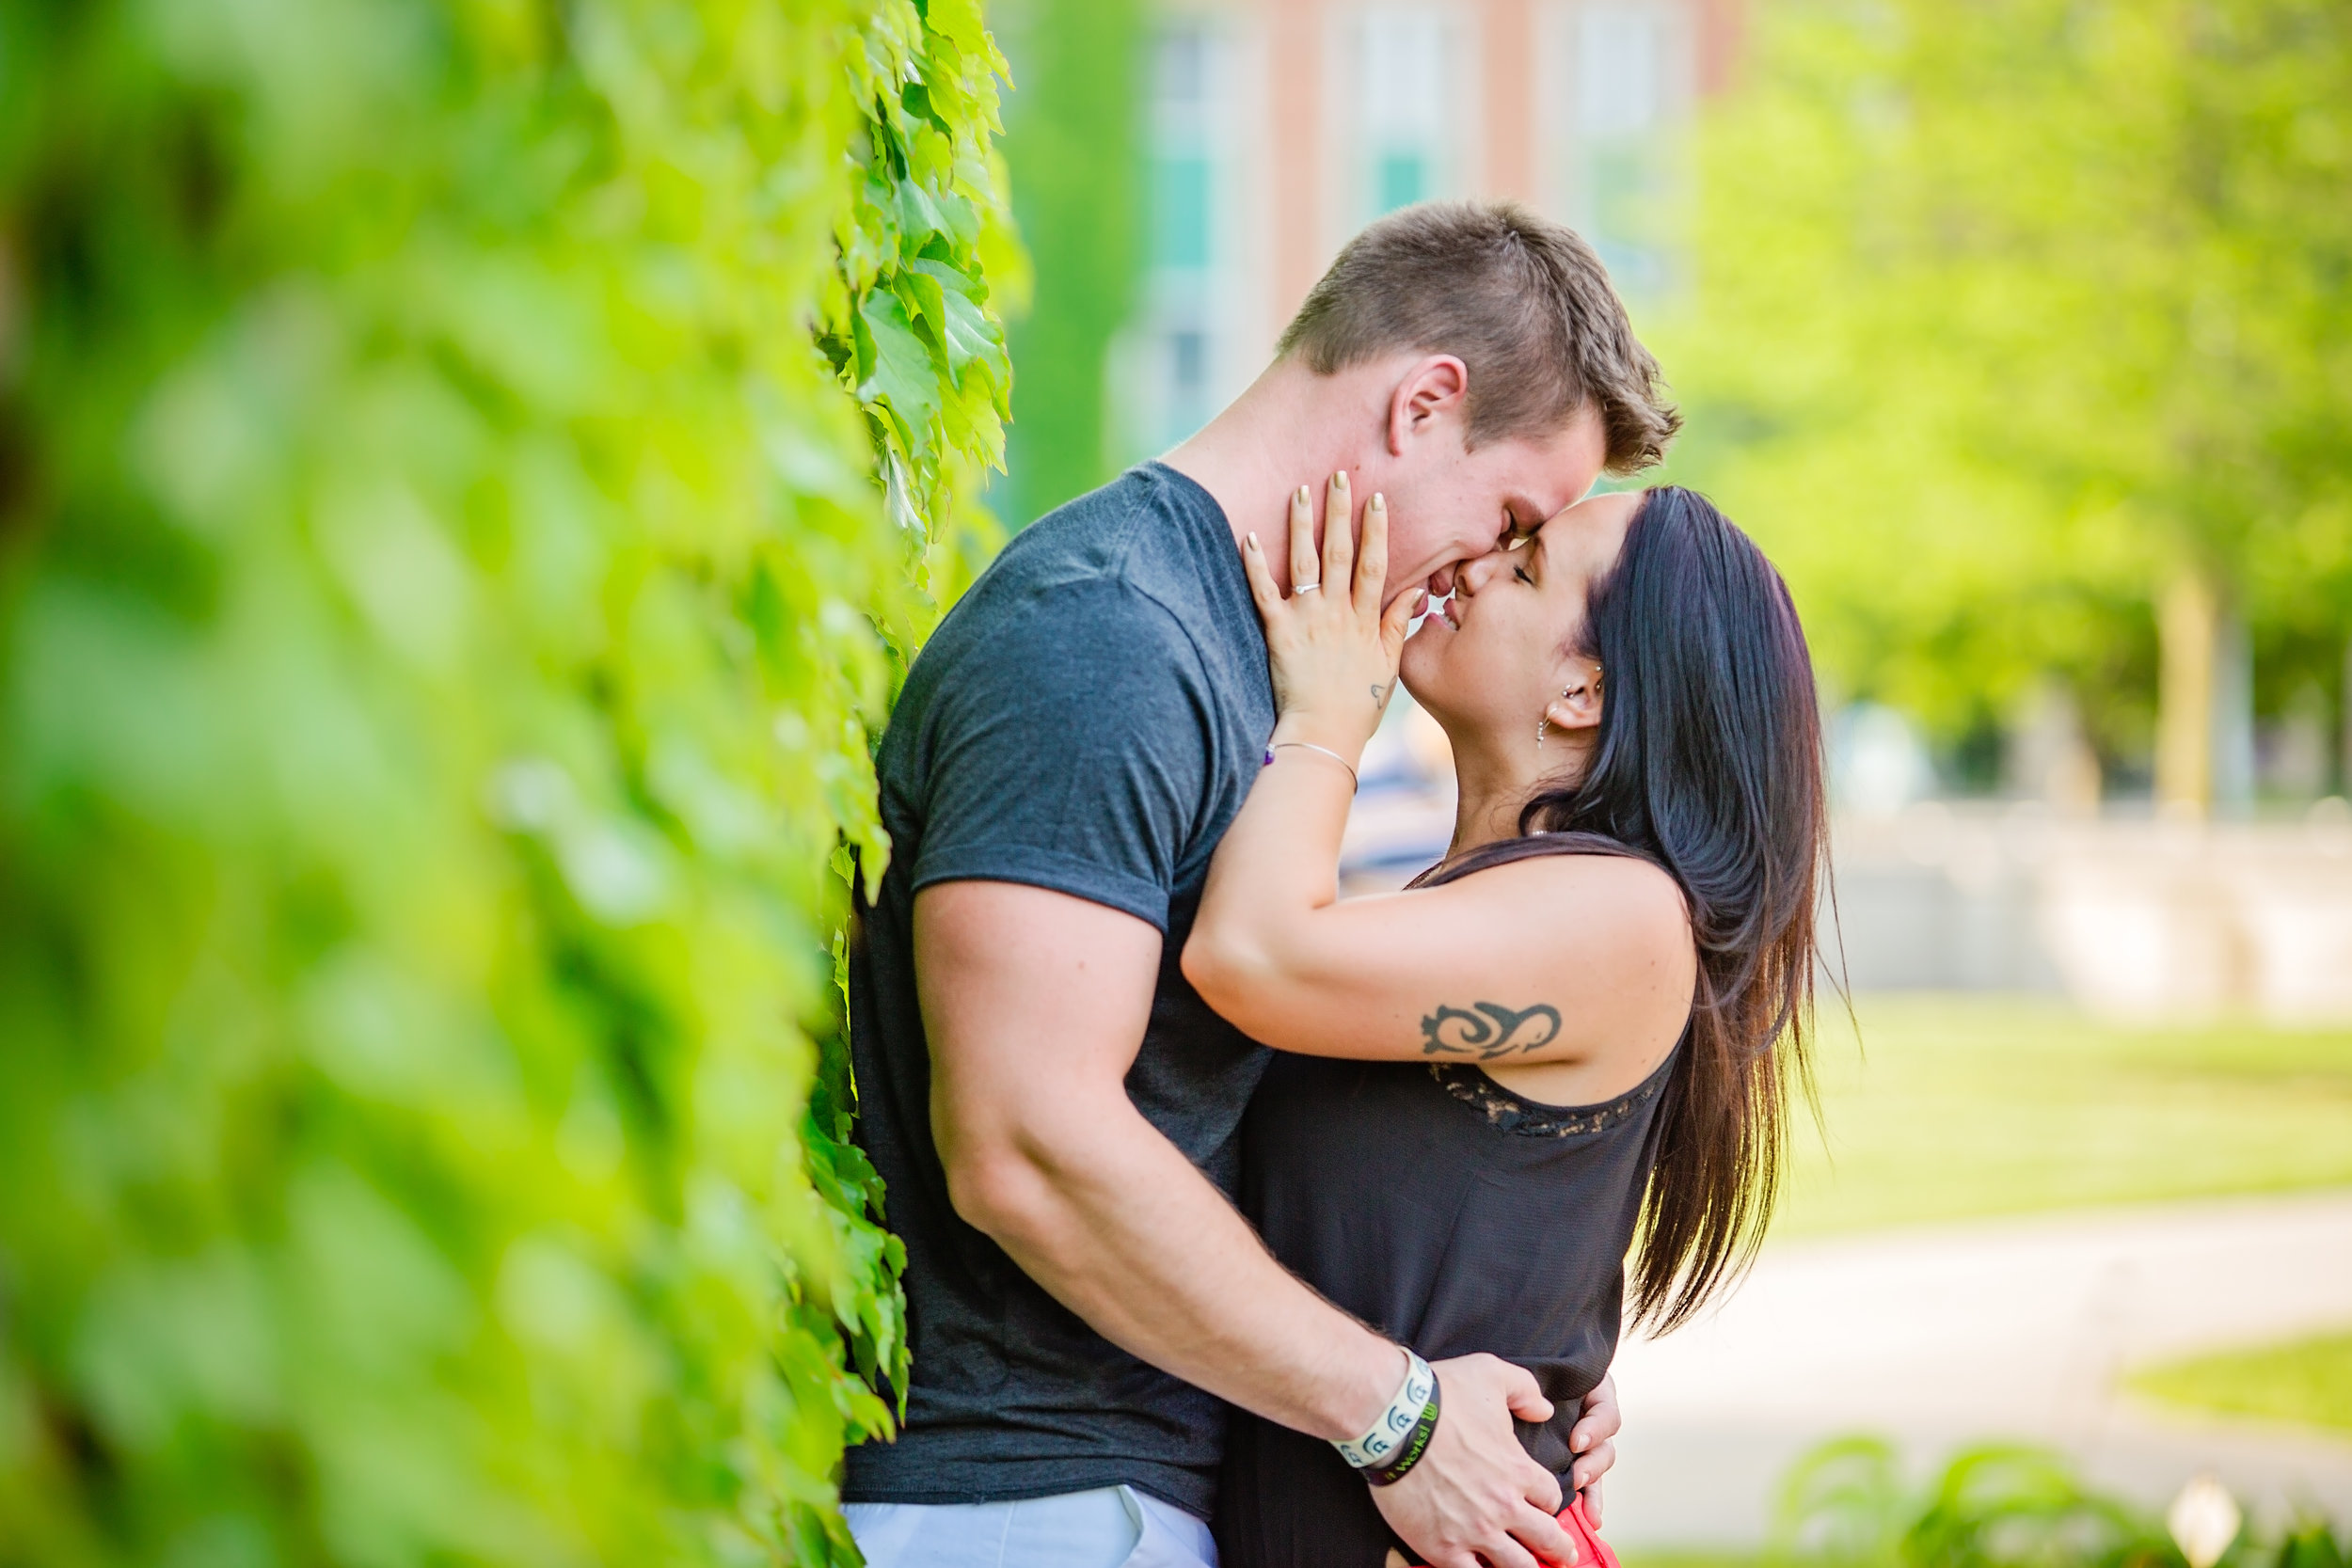 Amber did such an amazing job with my engagement photos. I couldn't be more pleased. They turned out absolutely stunning and captured the love my fiance and I share. I'd recommend her to everyone and anyone! - Chelsea Mcdaniel